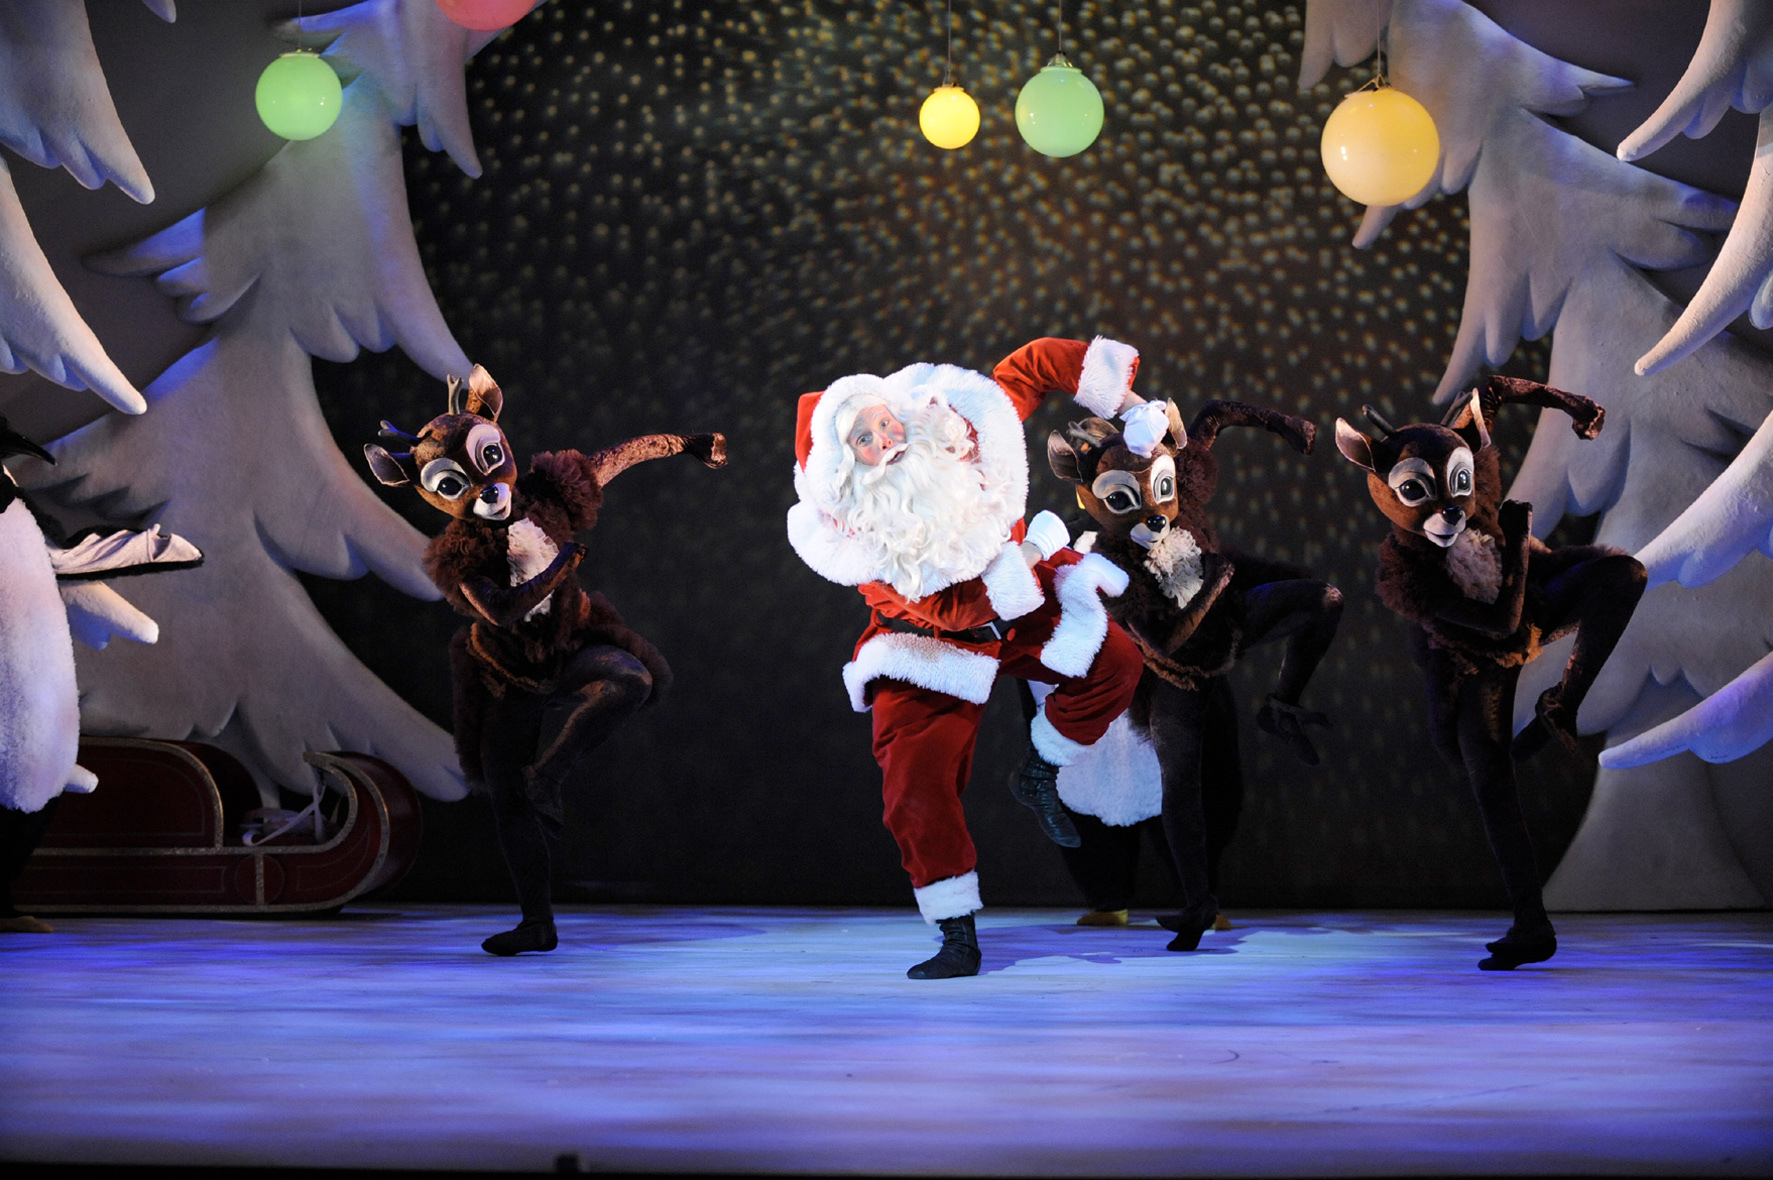 Family Christmas shows in London